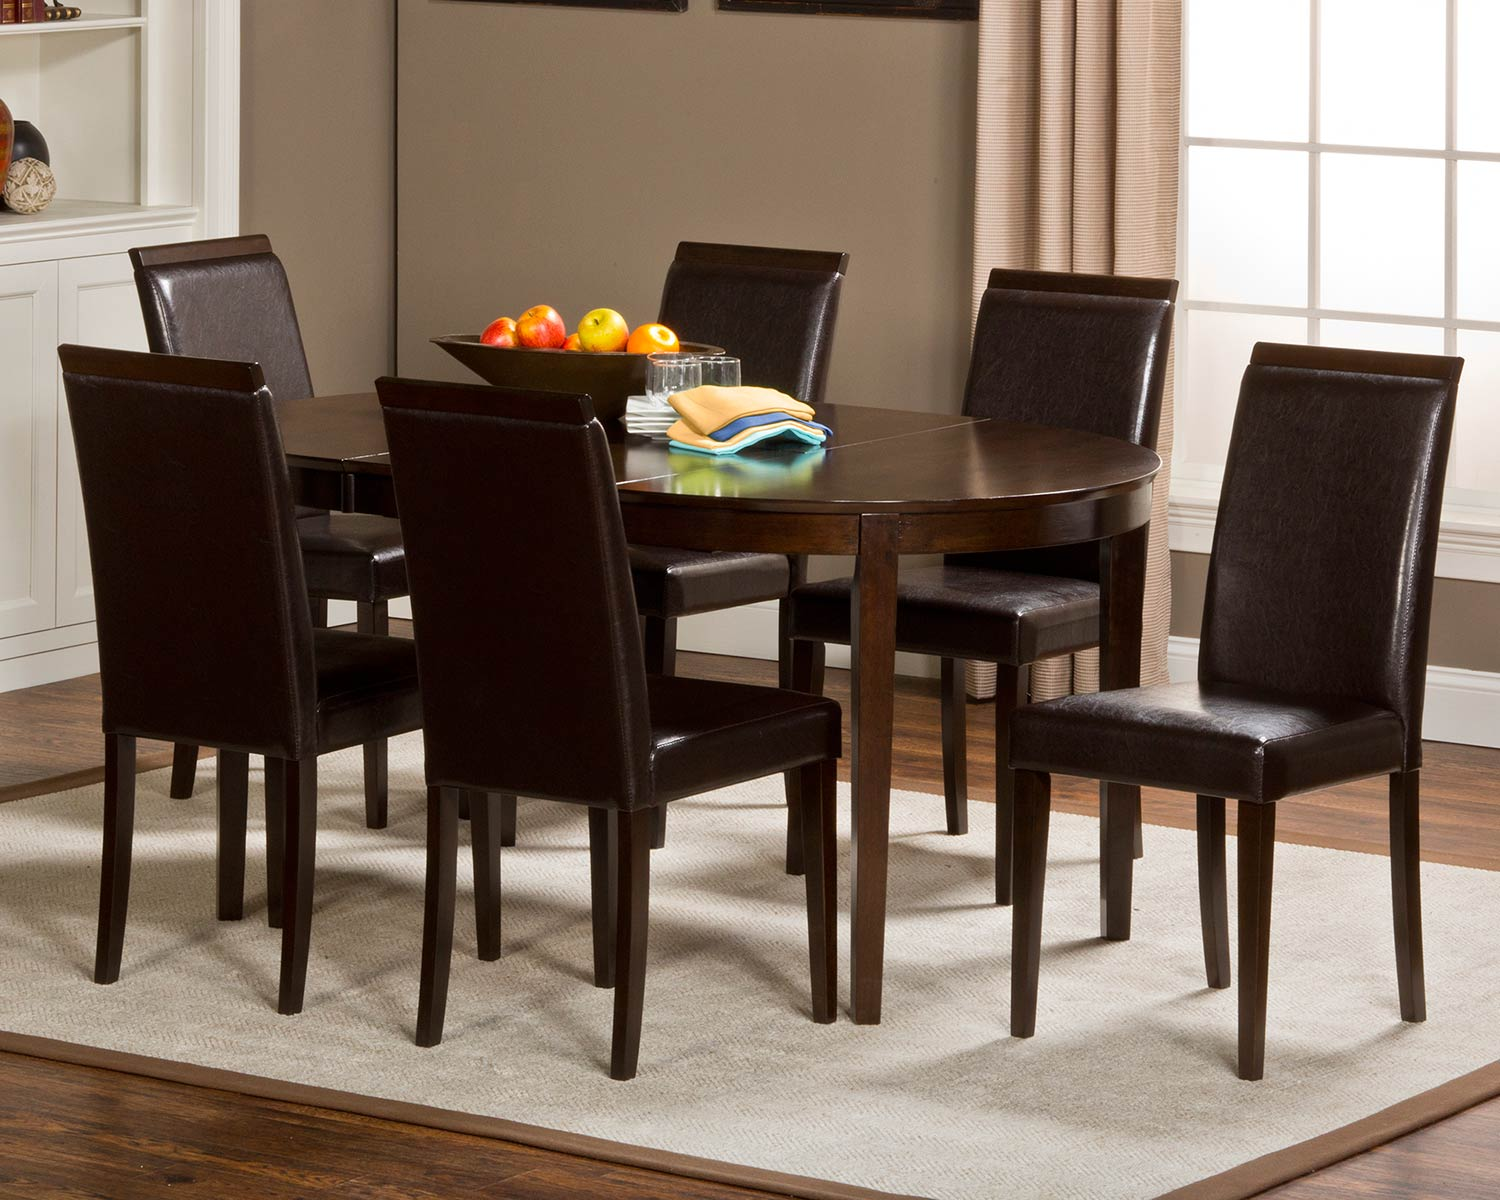 Hillsdale Atmore Dining Set - Cappuccino